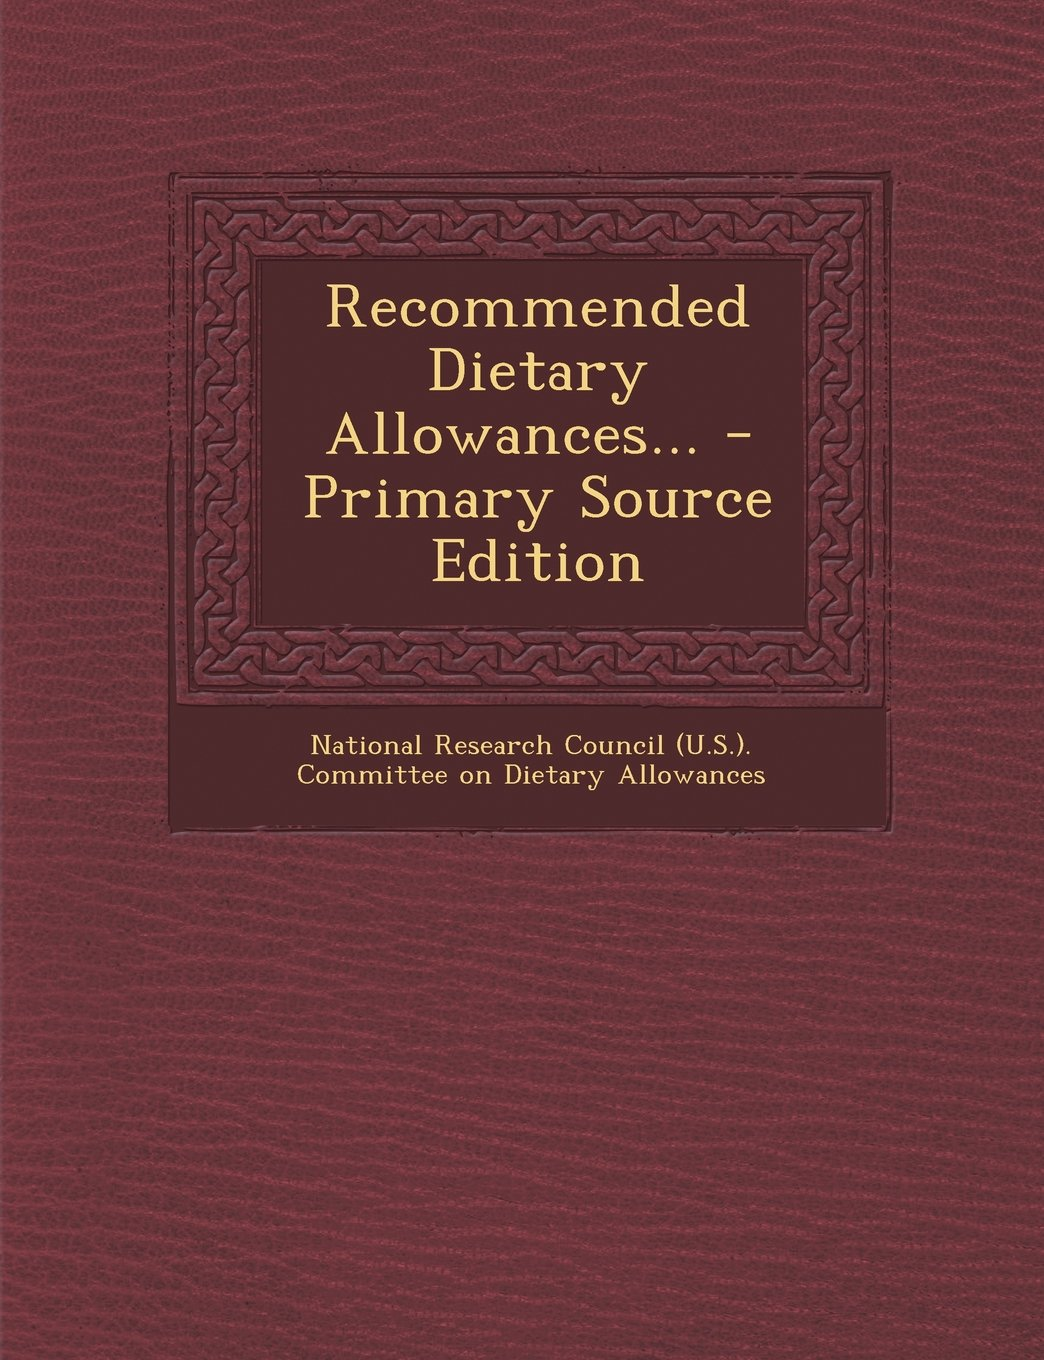 Recommended Dietary Allowances... - Primary Source Edition PDF